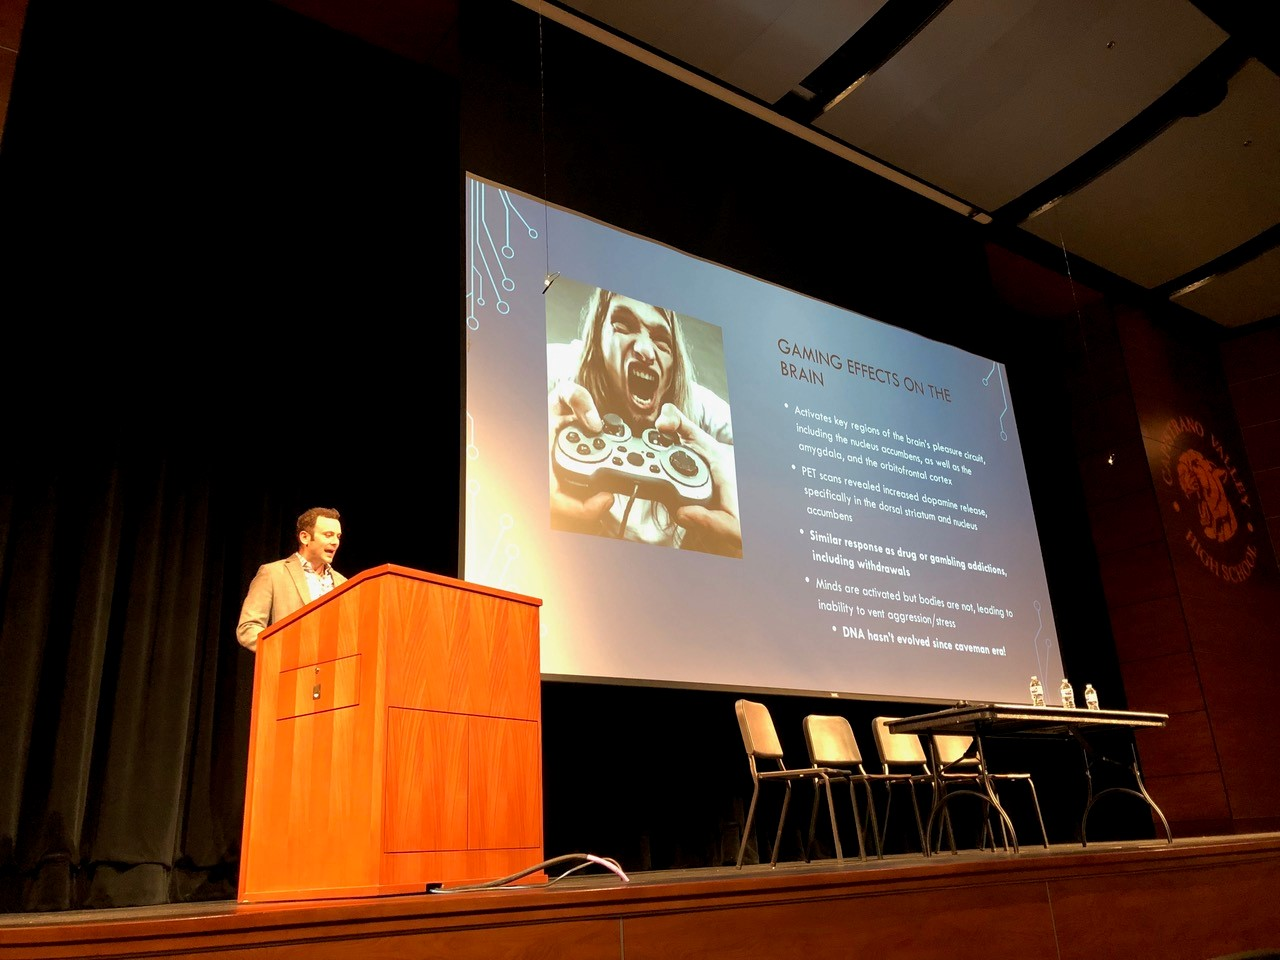 CUSD and Hoag Host First Session of Speaker Series with Gaming, Social Media and Mental Wellness Discussion